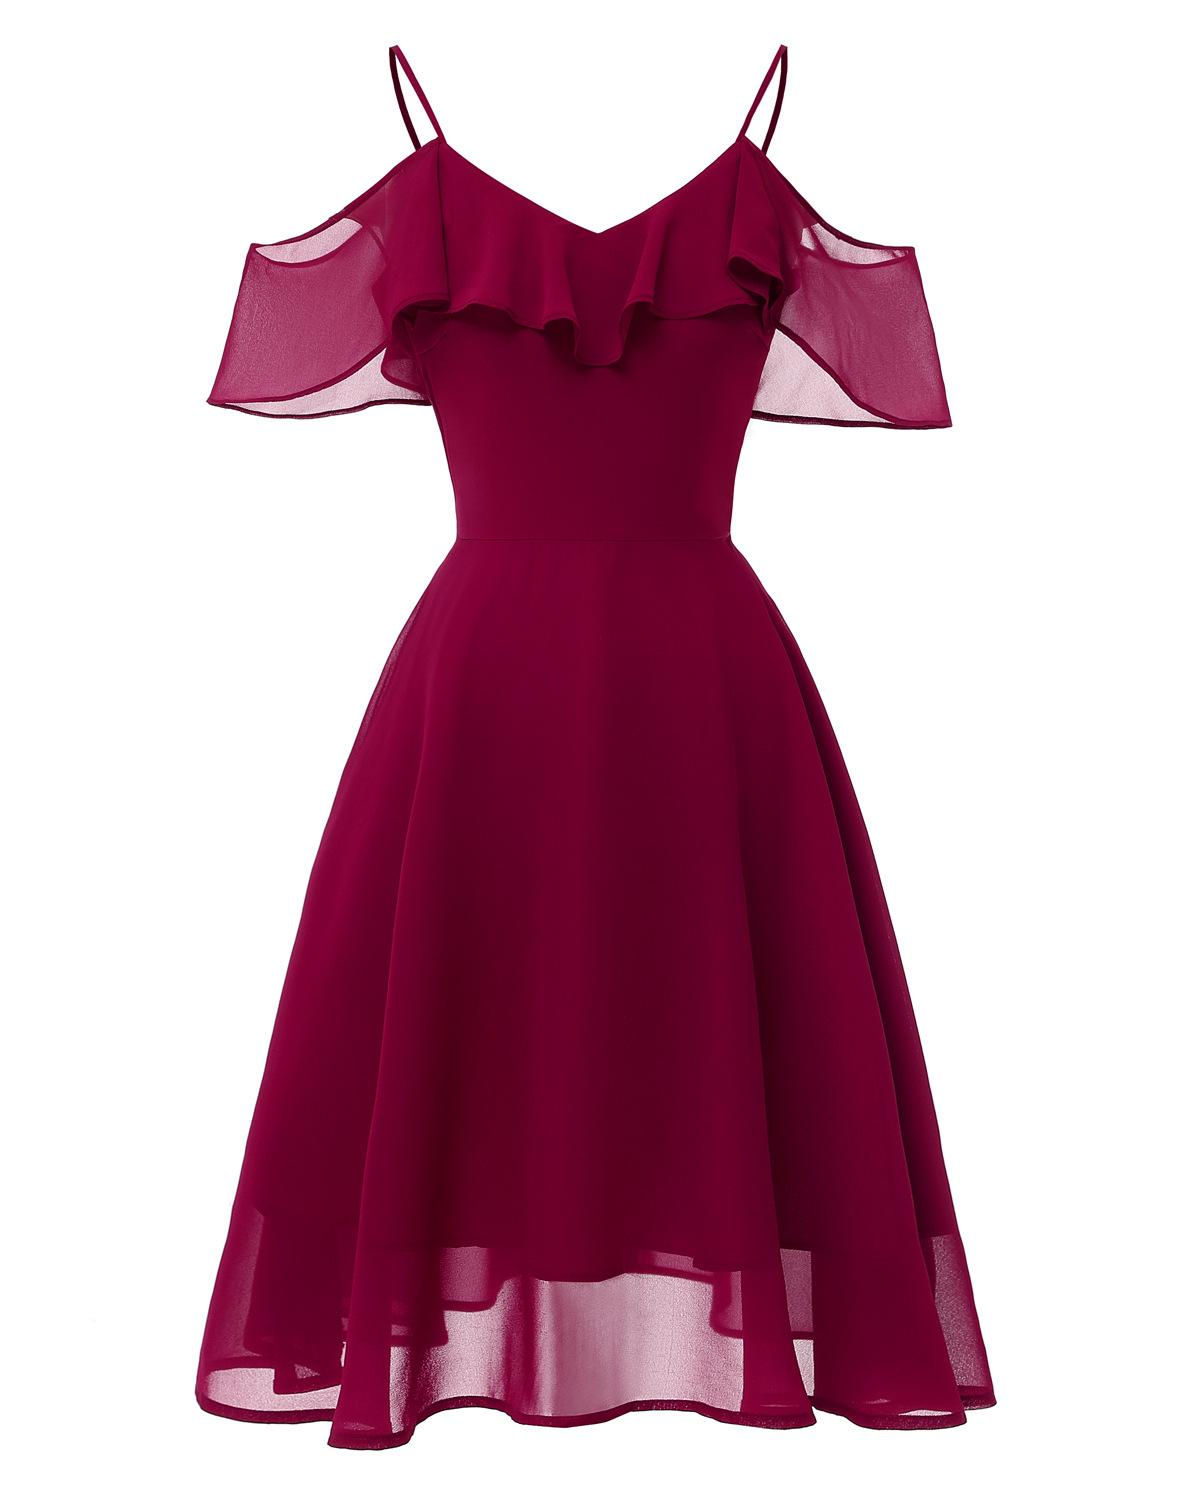 Sexy Off-shoulder Cocktail Dresses Chiffon Spaghetti Straps Burgundy Navy Pink Robe Party 2019 Short Vestidos Homecoming Dress